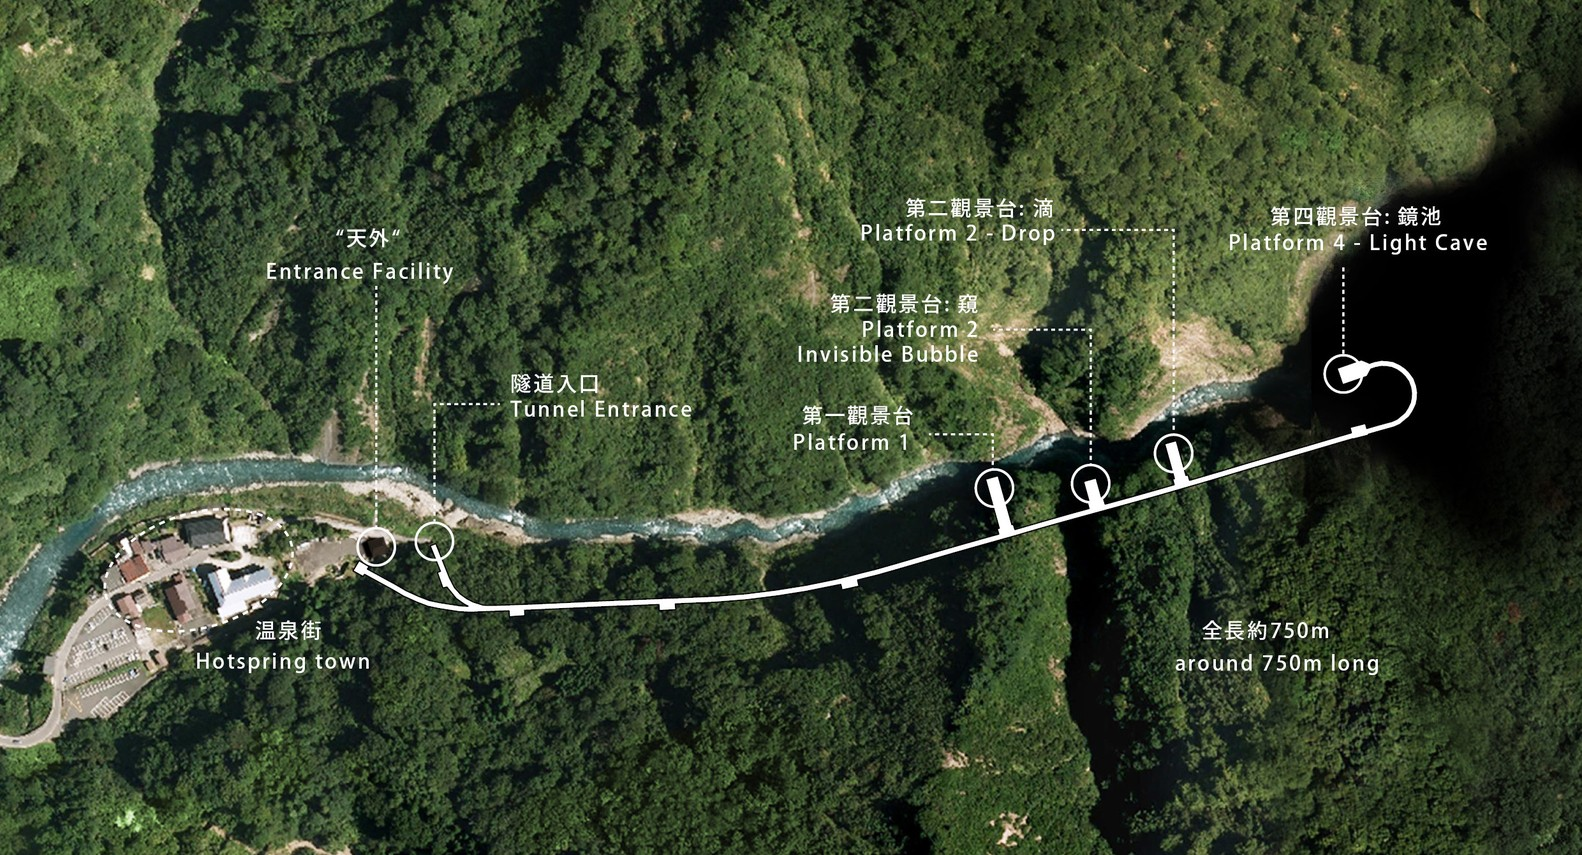 01_MAD_Echigo_Tsumari_Tunnel_of_Light_Sitemap_low-res.jpg